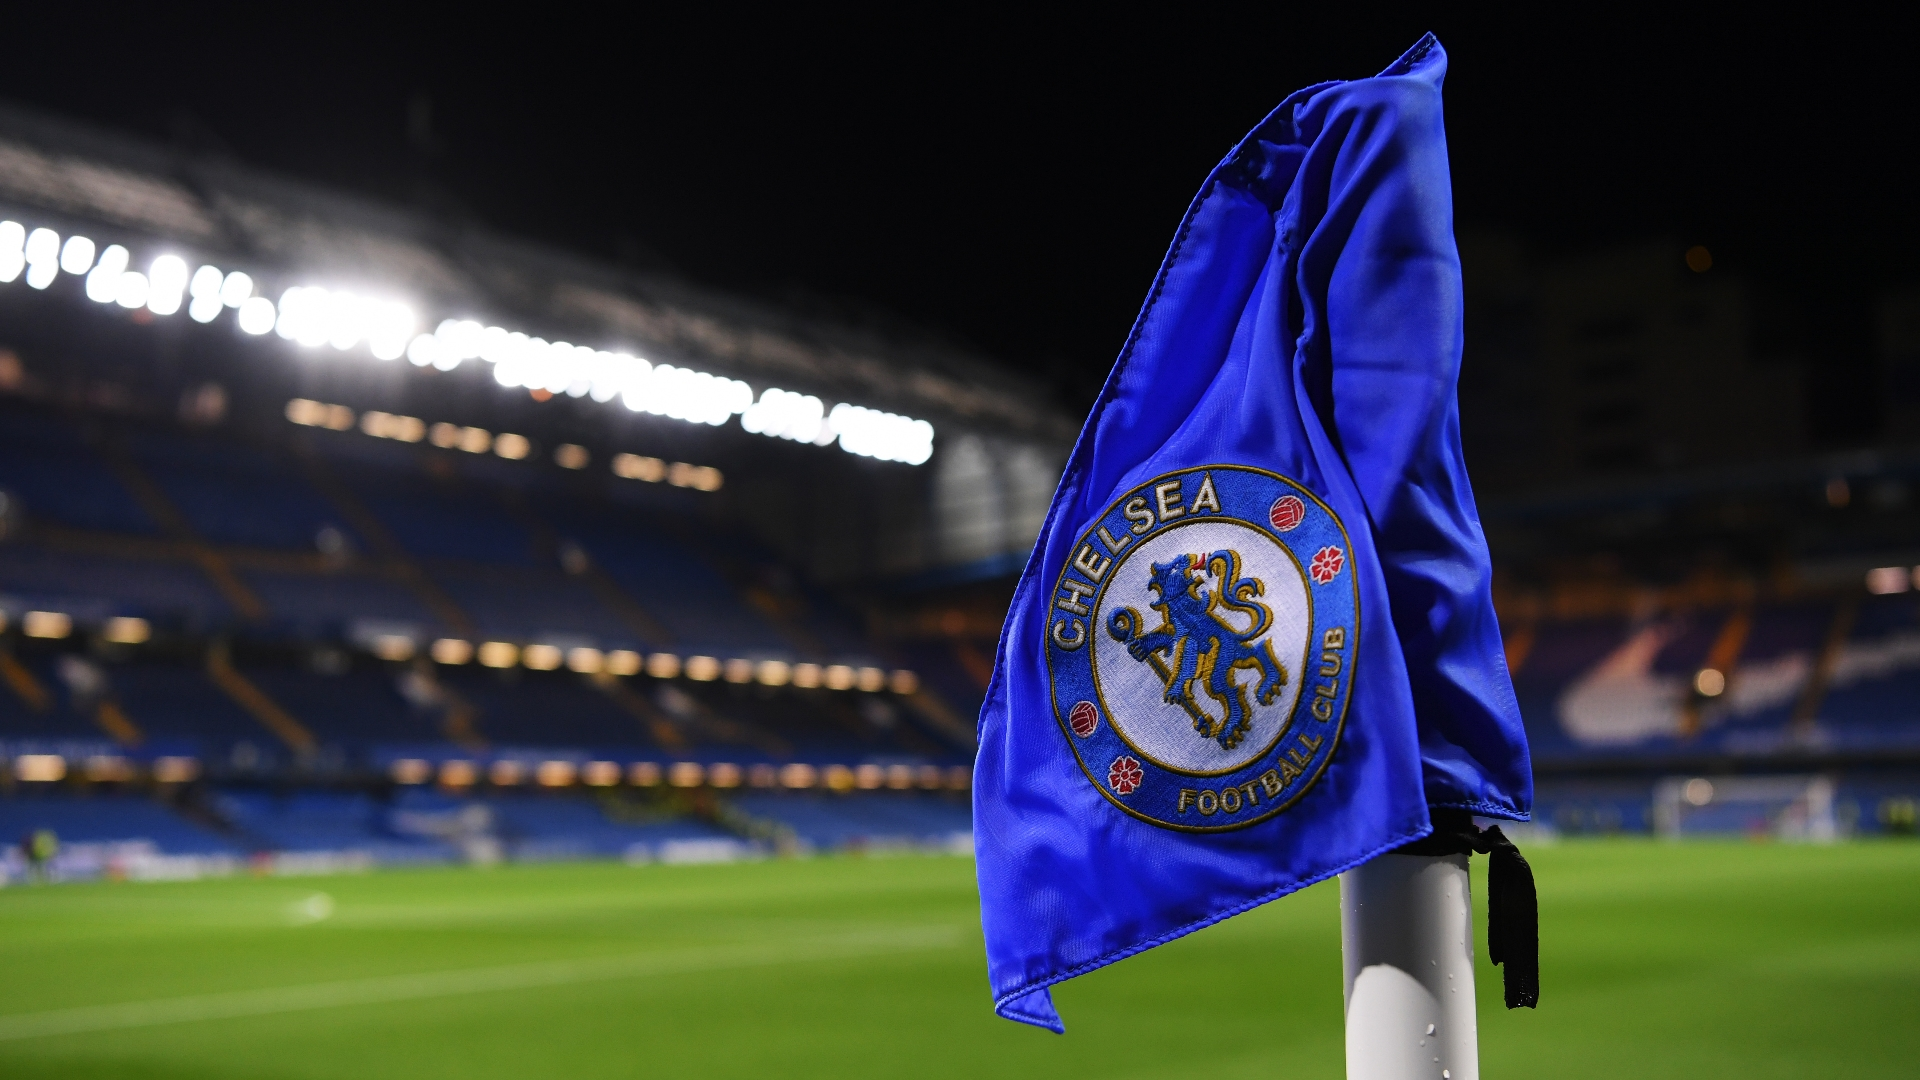 UEFA closes Chelsea anti-Semitic chants case; fines Red Star